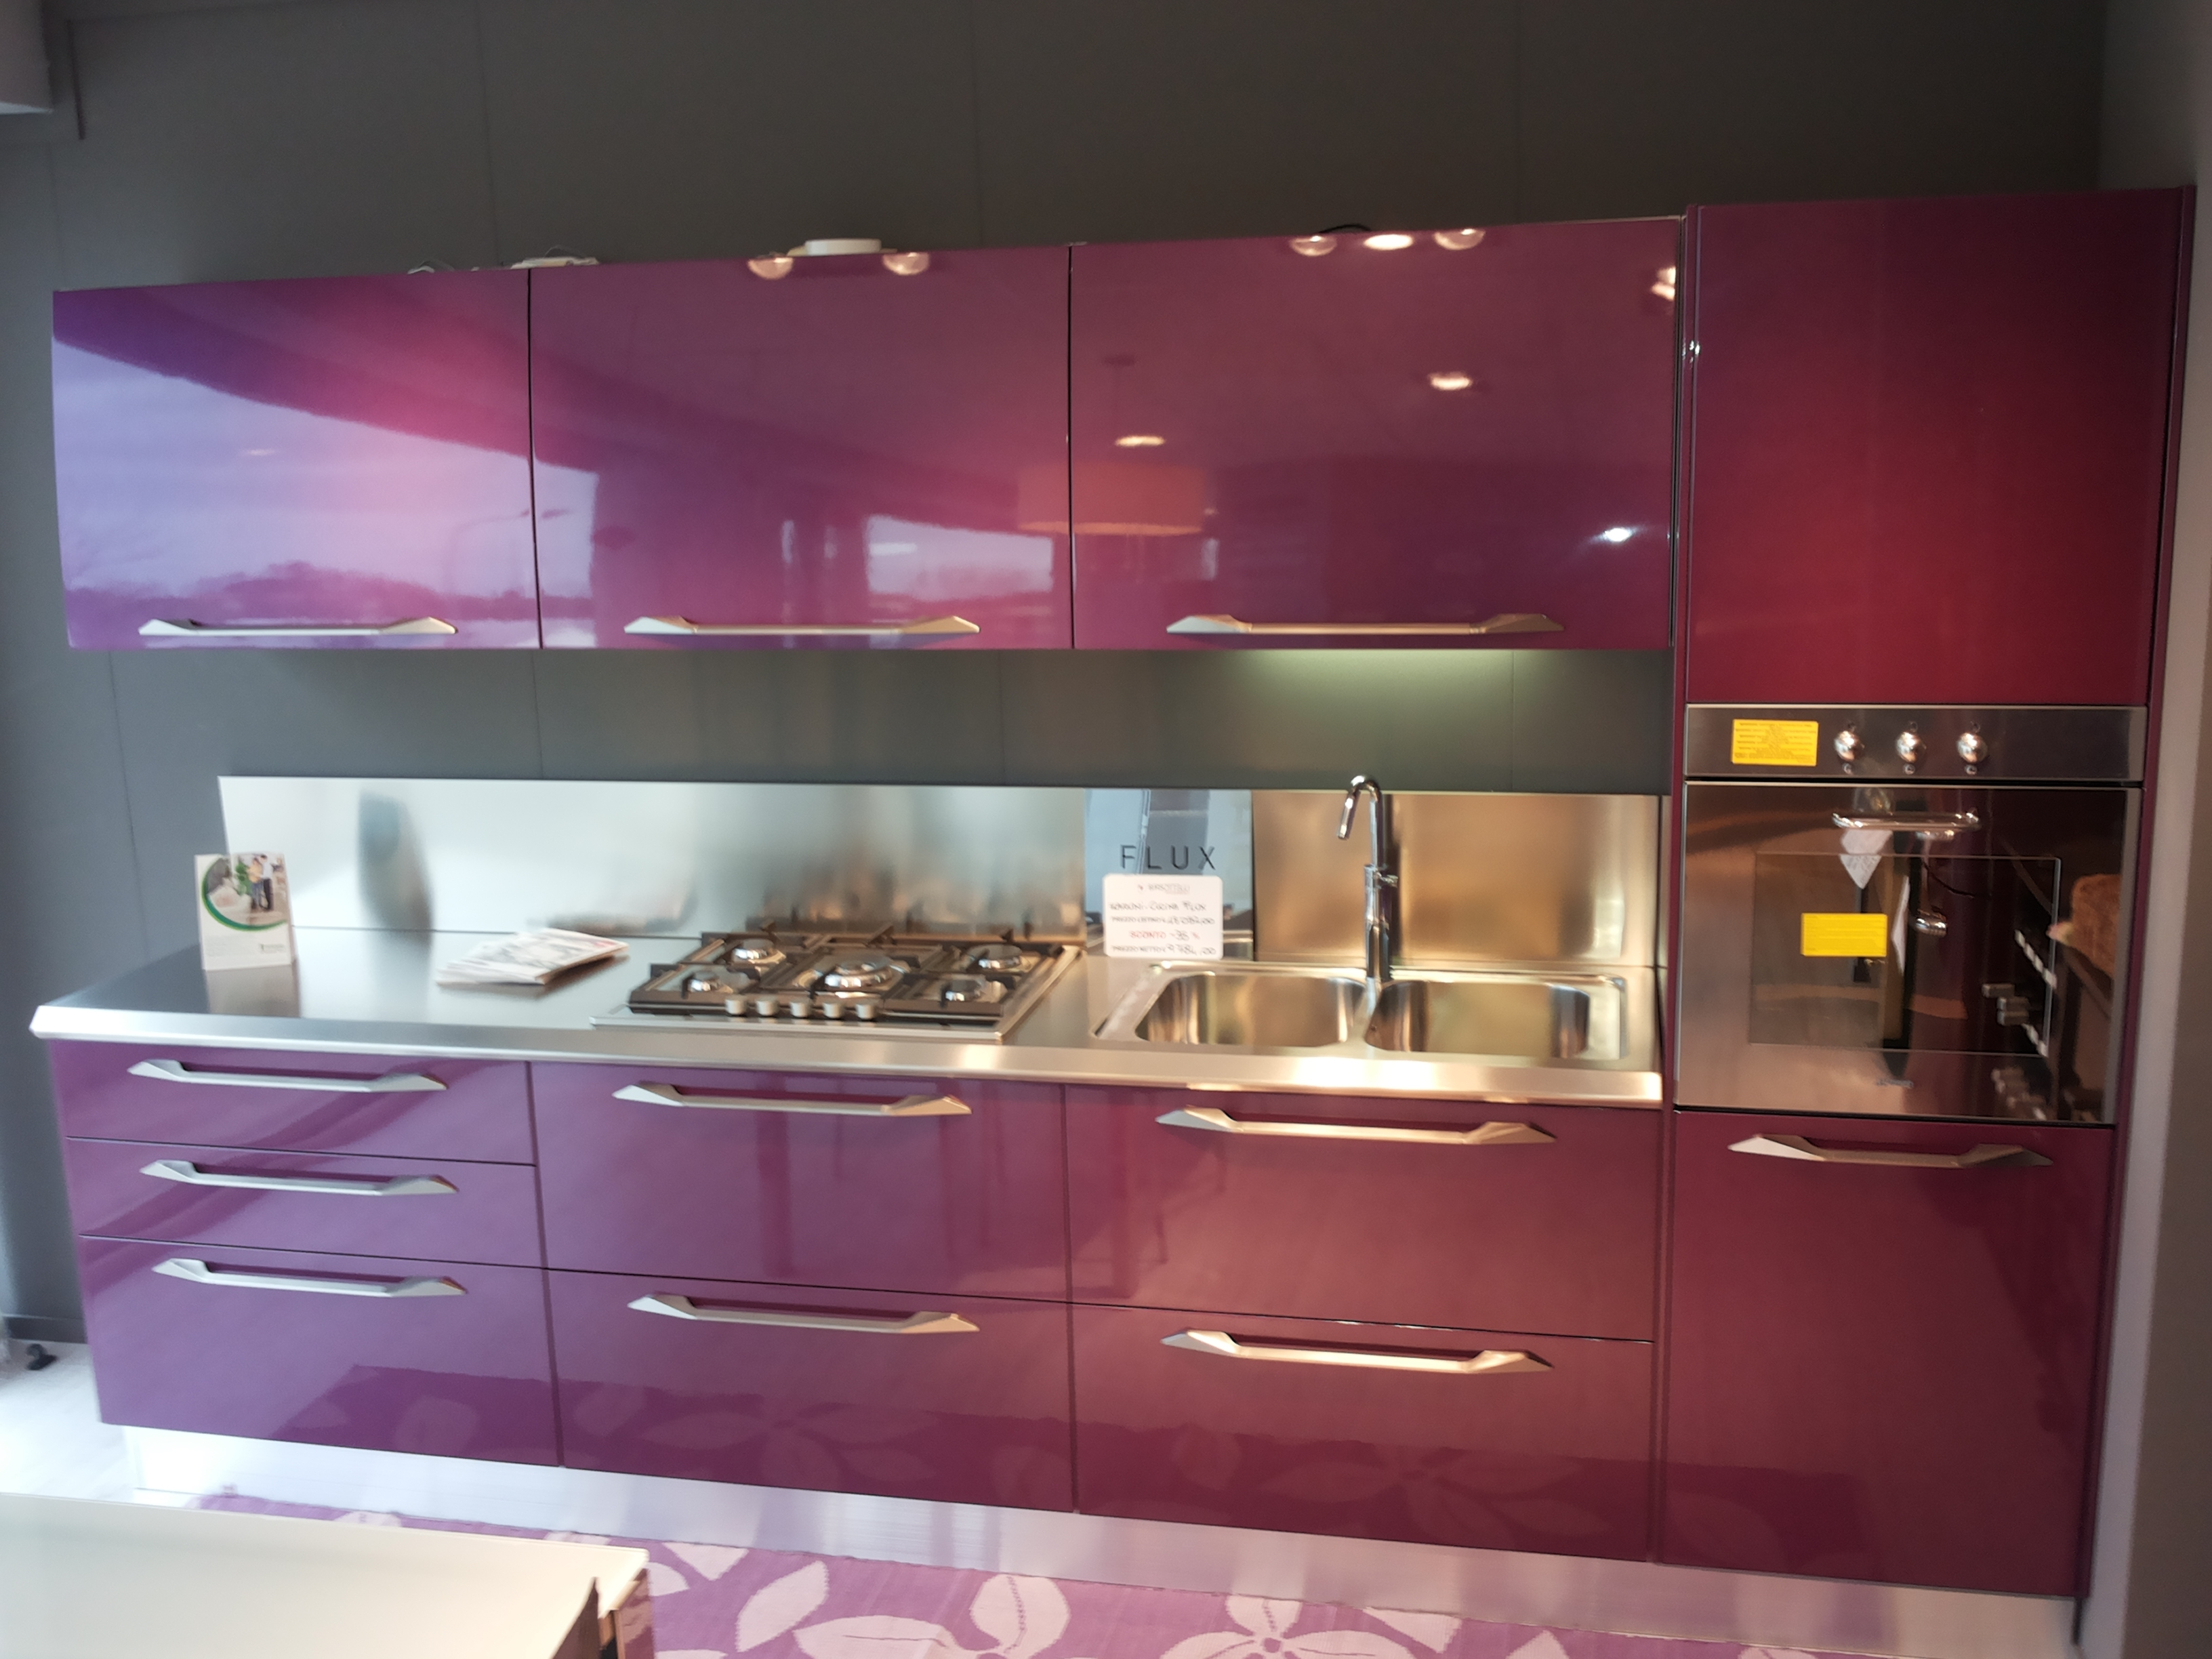 Awesome Listino Cucine Scavolini Images - acrylicgiftware.us ...